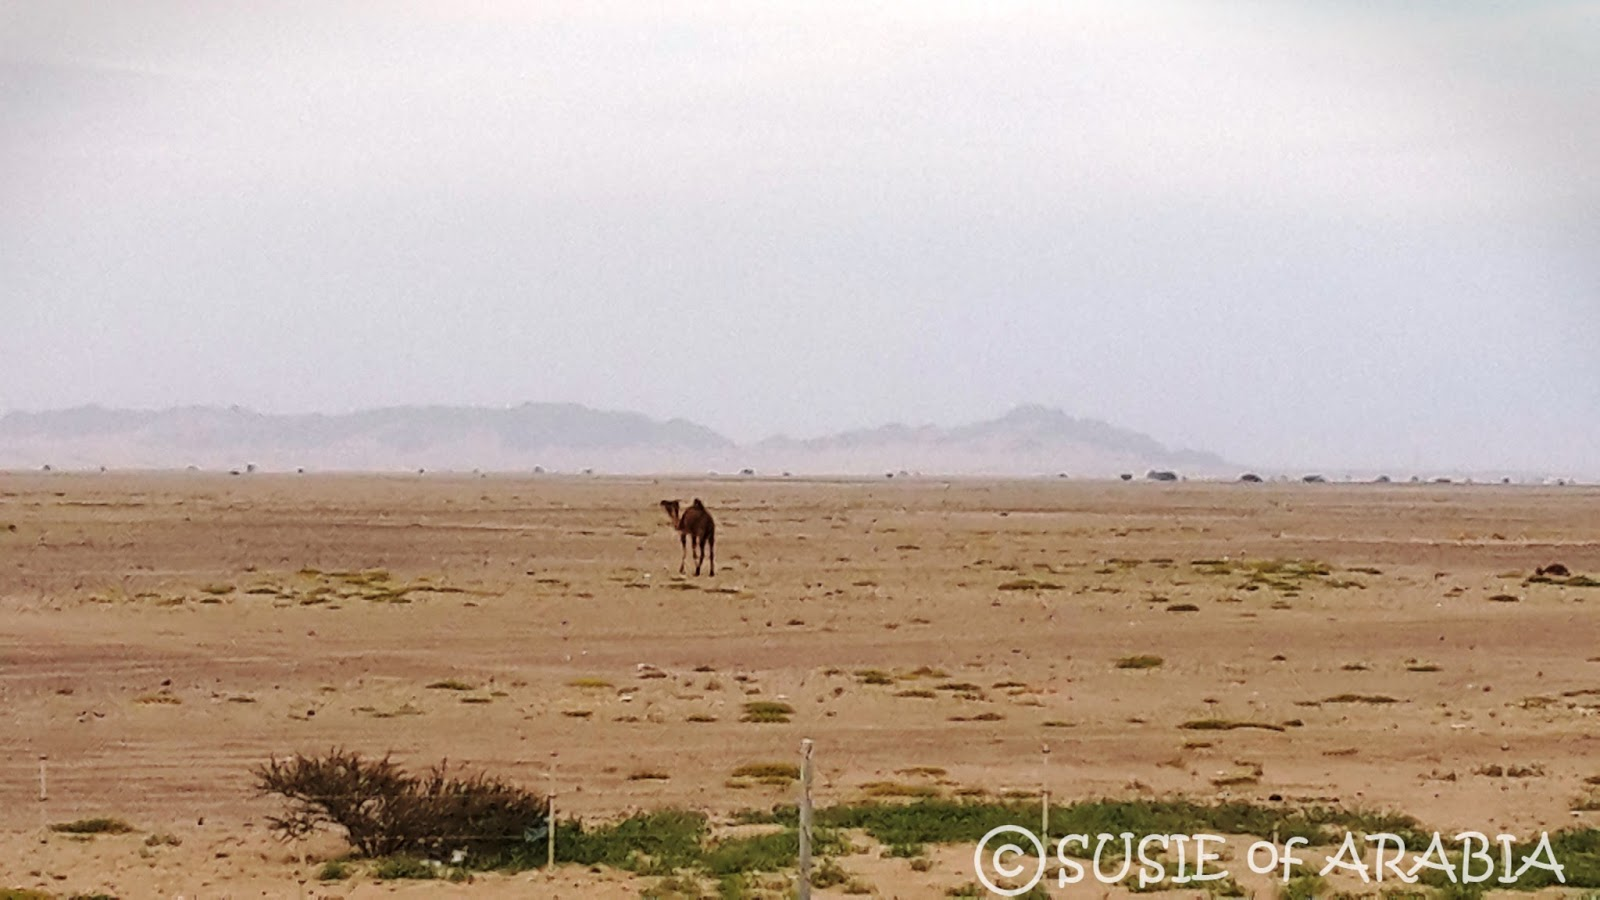 Jeddah Daily Photo: Saudi Arabia Desert Camel and Goats